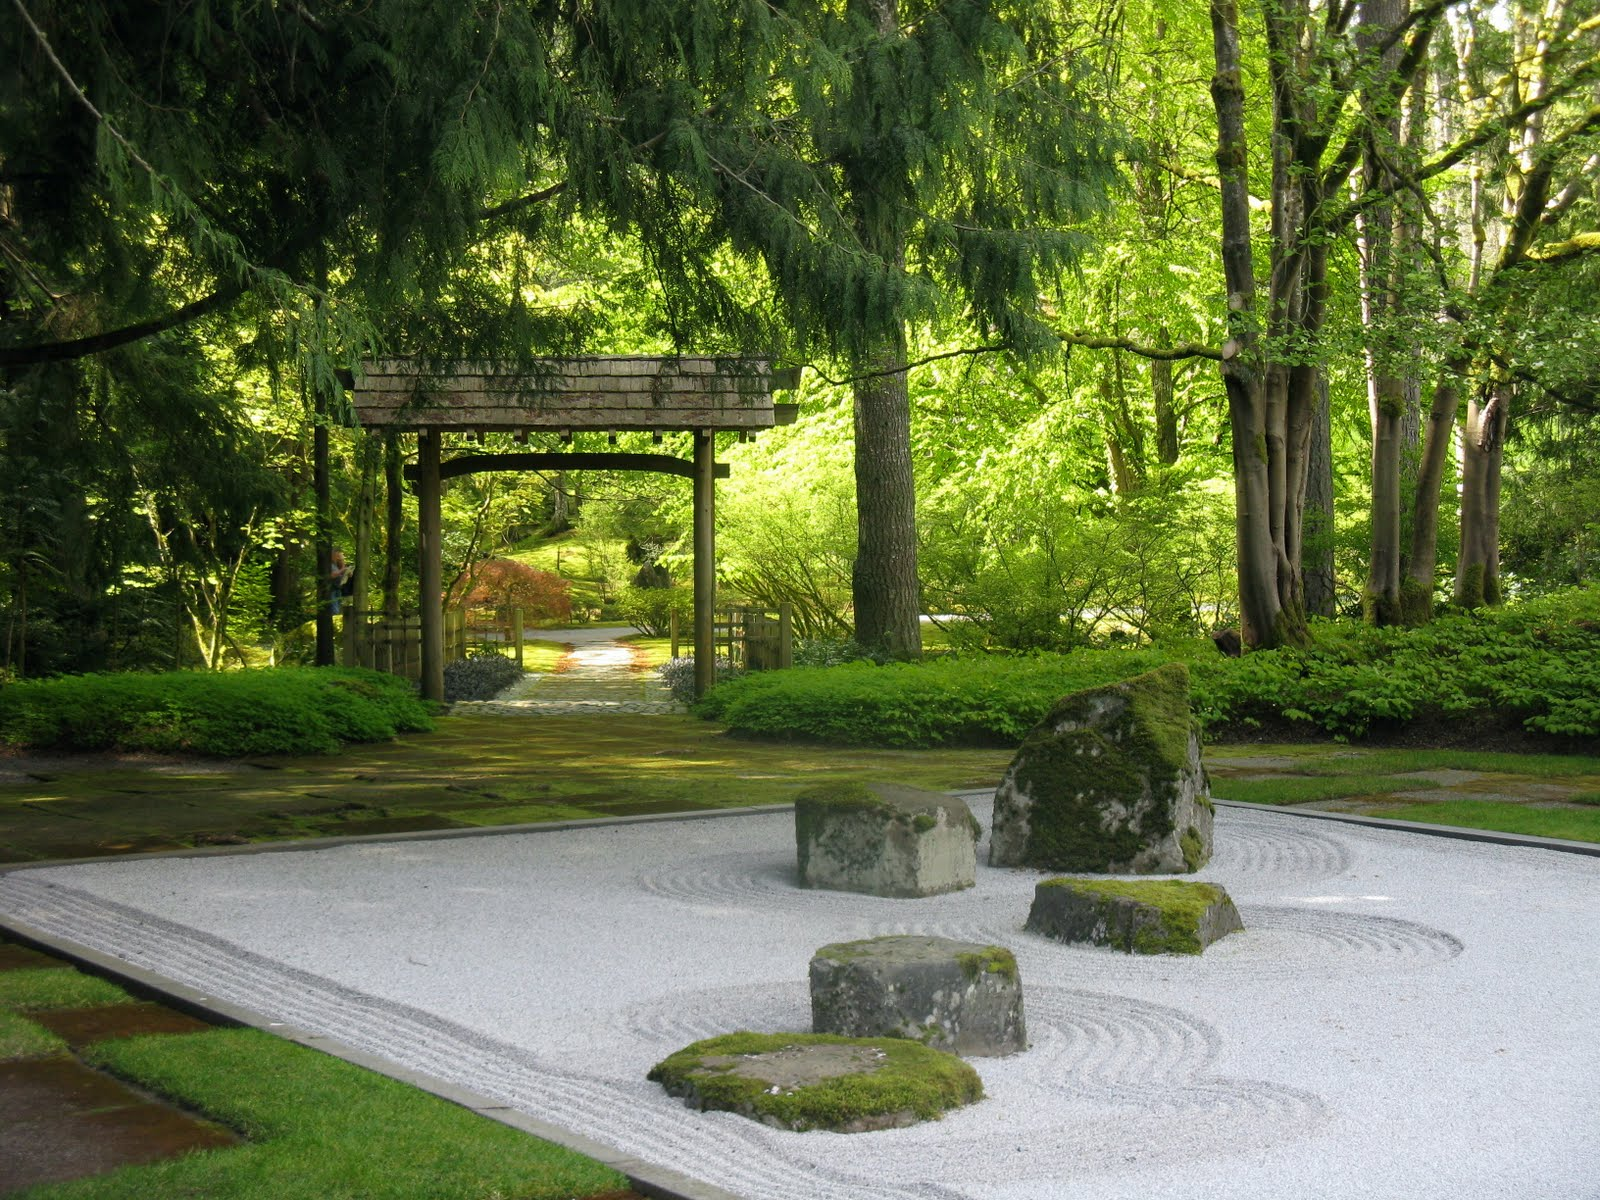 Zen Garden Wallpaper HD 10 Freetopwallpapercom 1600x1200